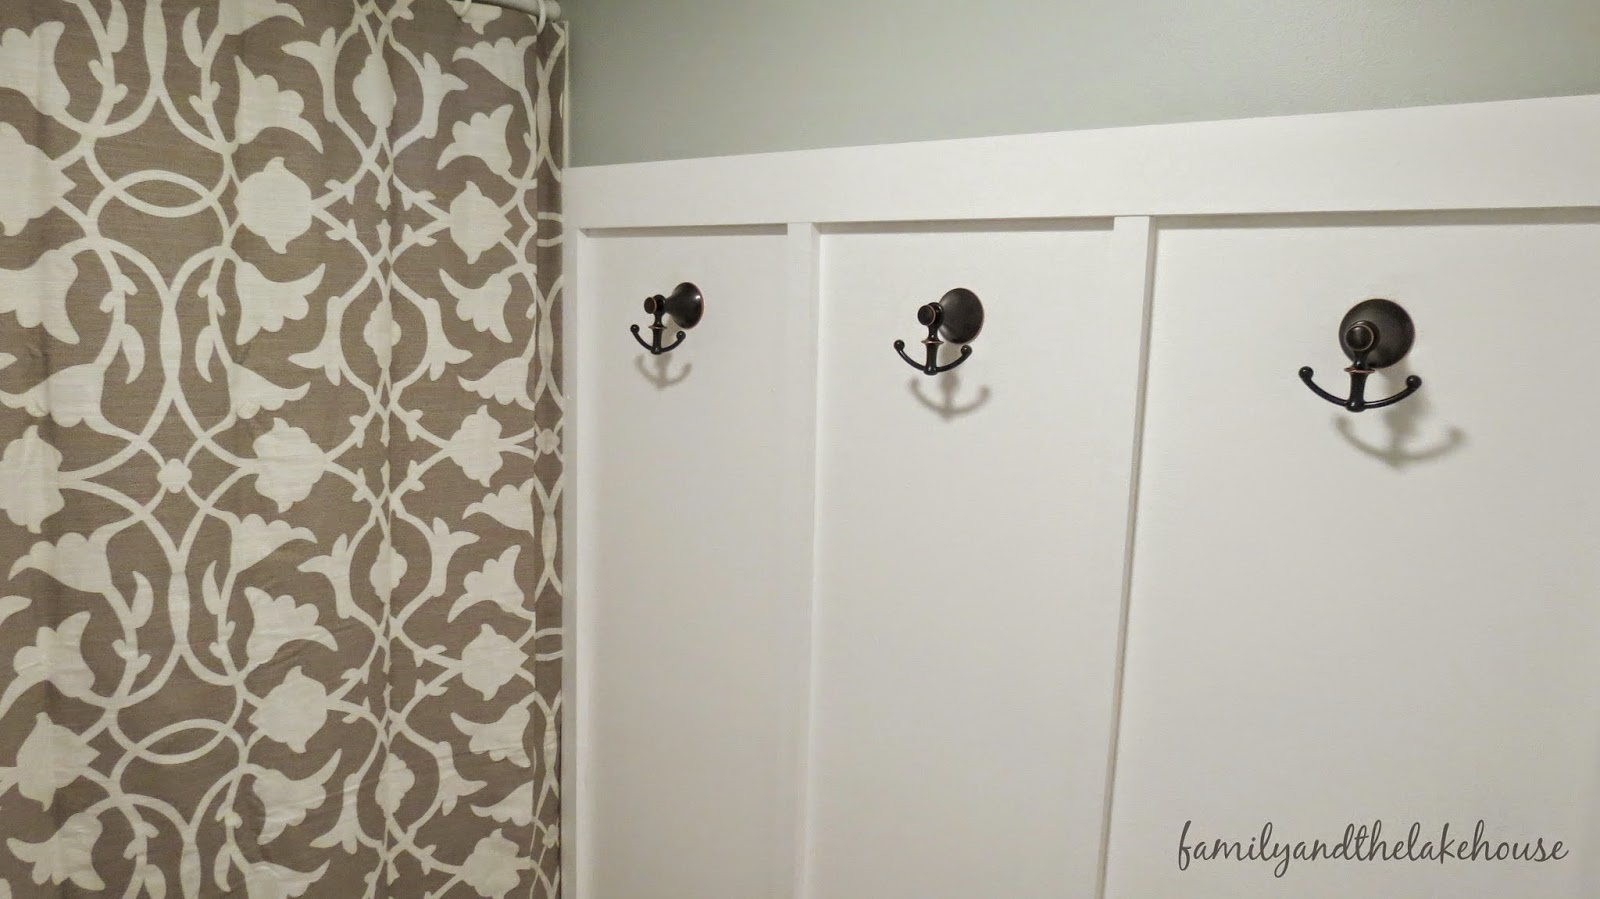 Family and the Lake House - Guest Bathroom